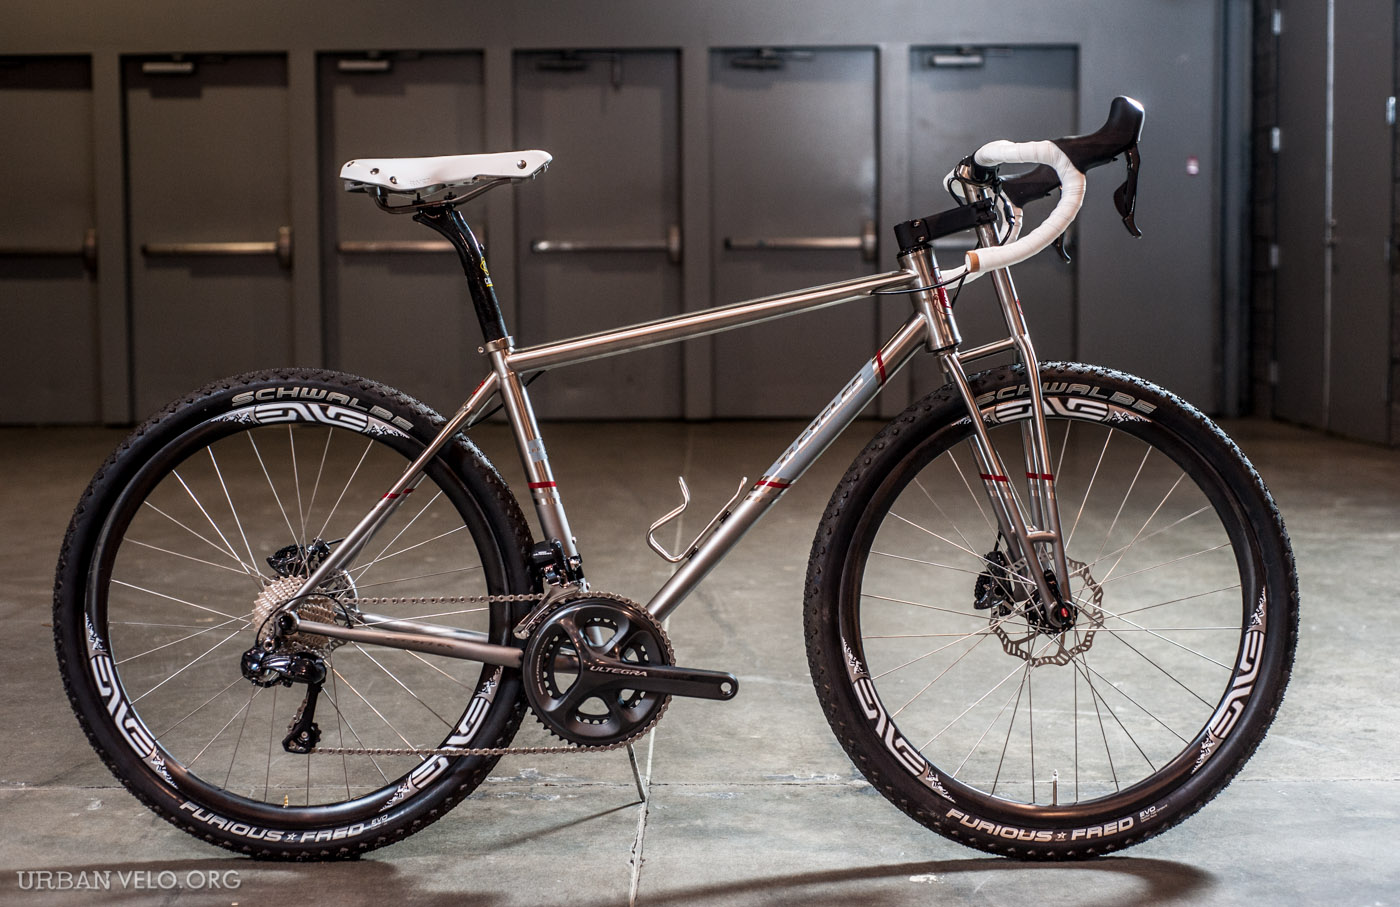 Wow, now that's a pretty cool way of integrating a titanium fork, stem and handlebars...